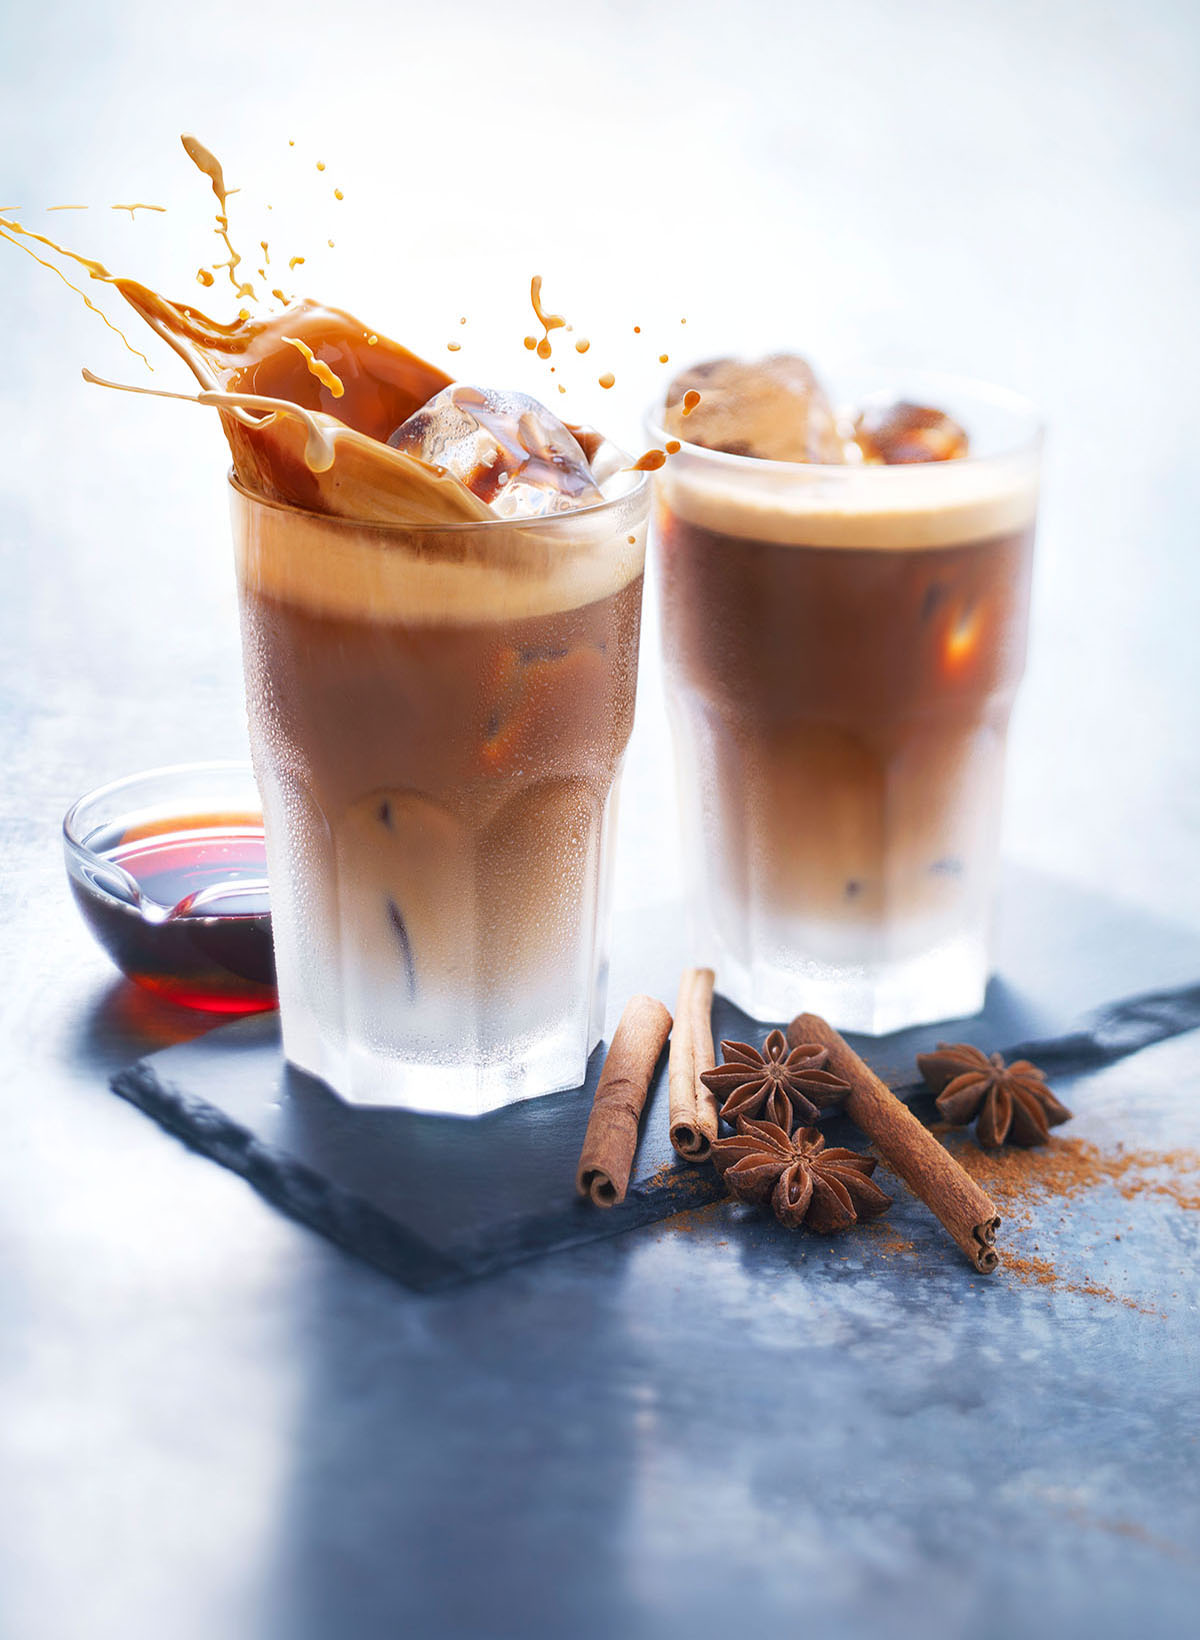 Drinks photography of DE's Ice Coffee made by Studio_m Photography Amsterdam